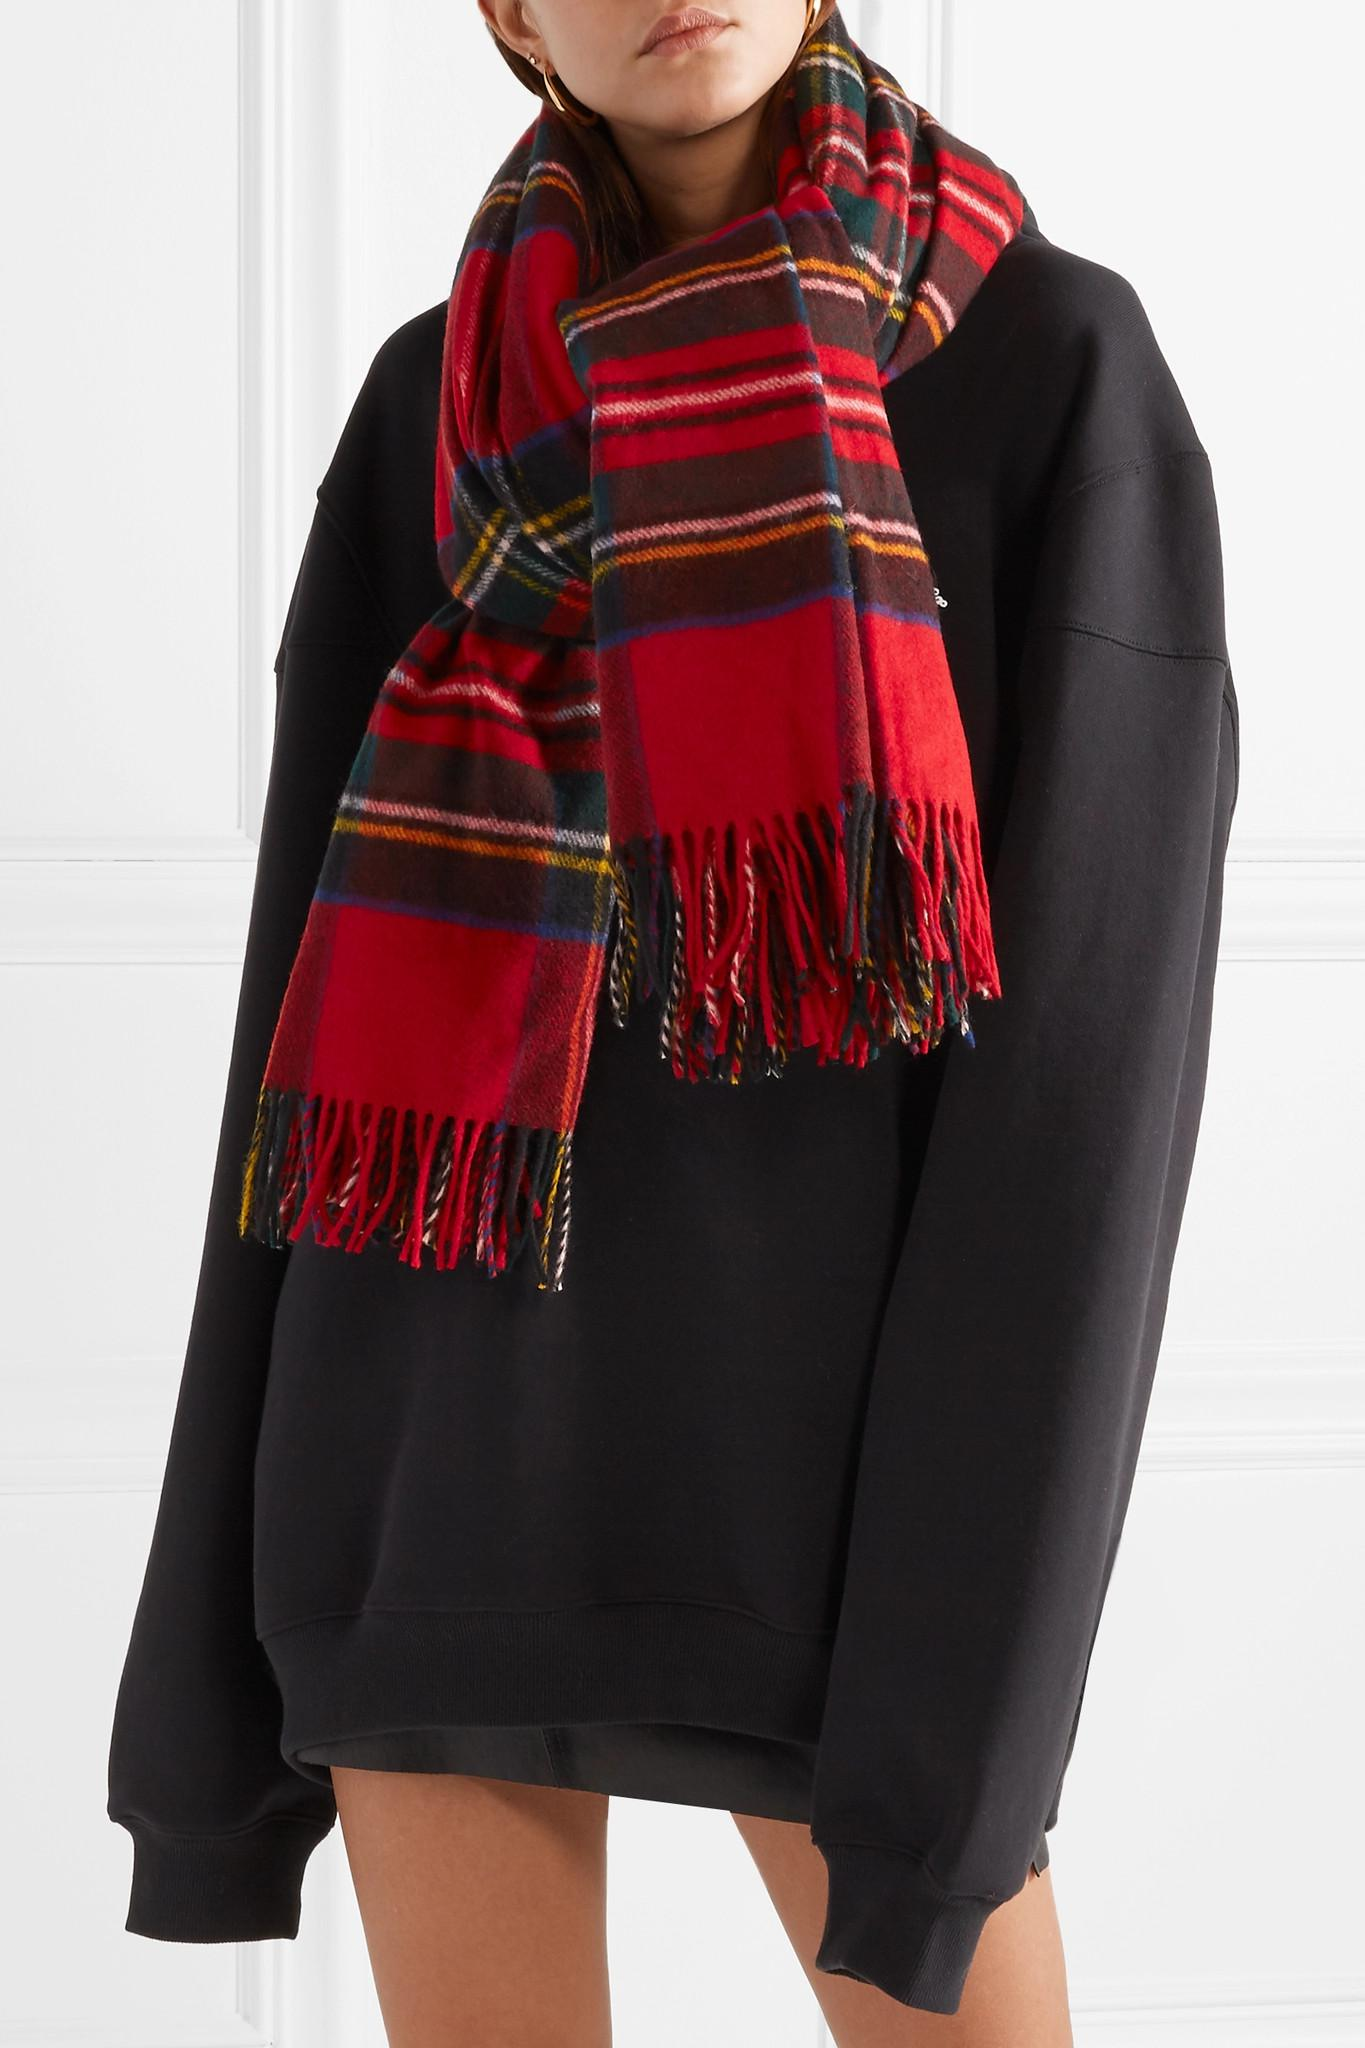 Fringed Tartan Merino Wool Scarf - Red We11done VDx40R85